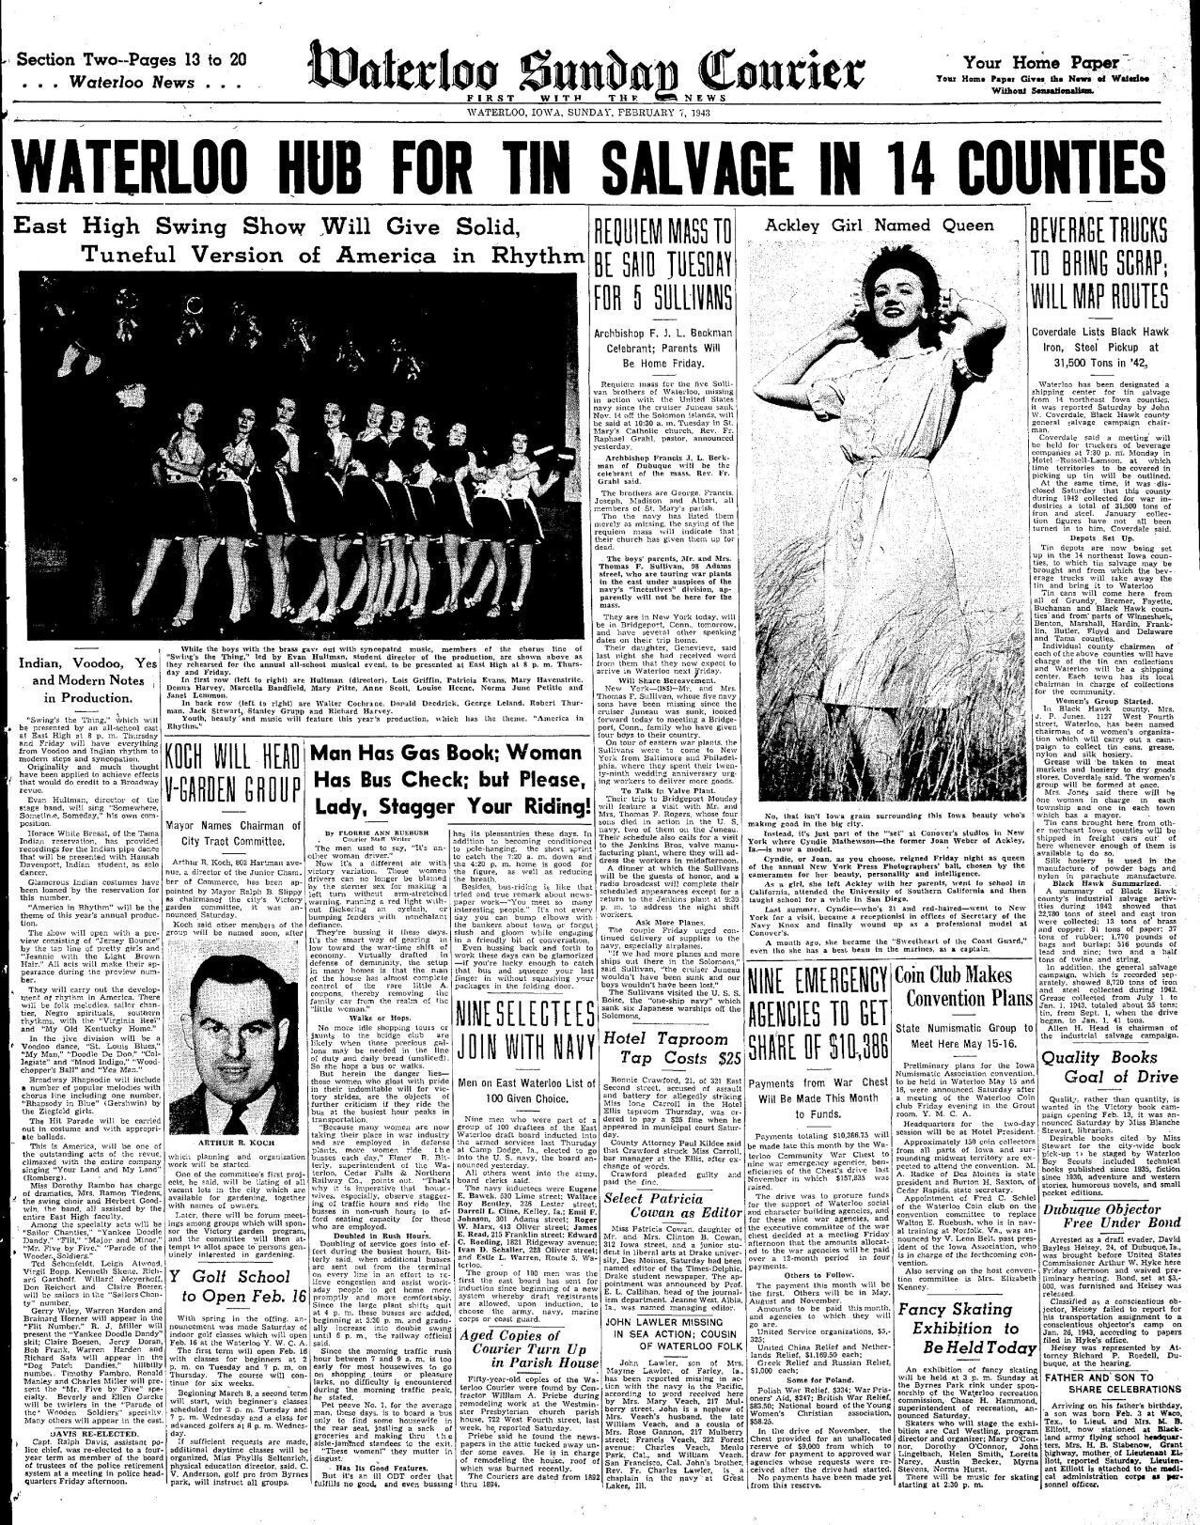 Courier Feb. 7, 1943